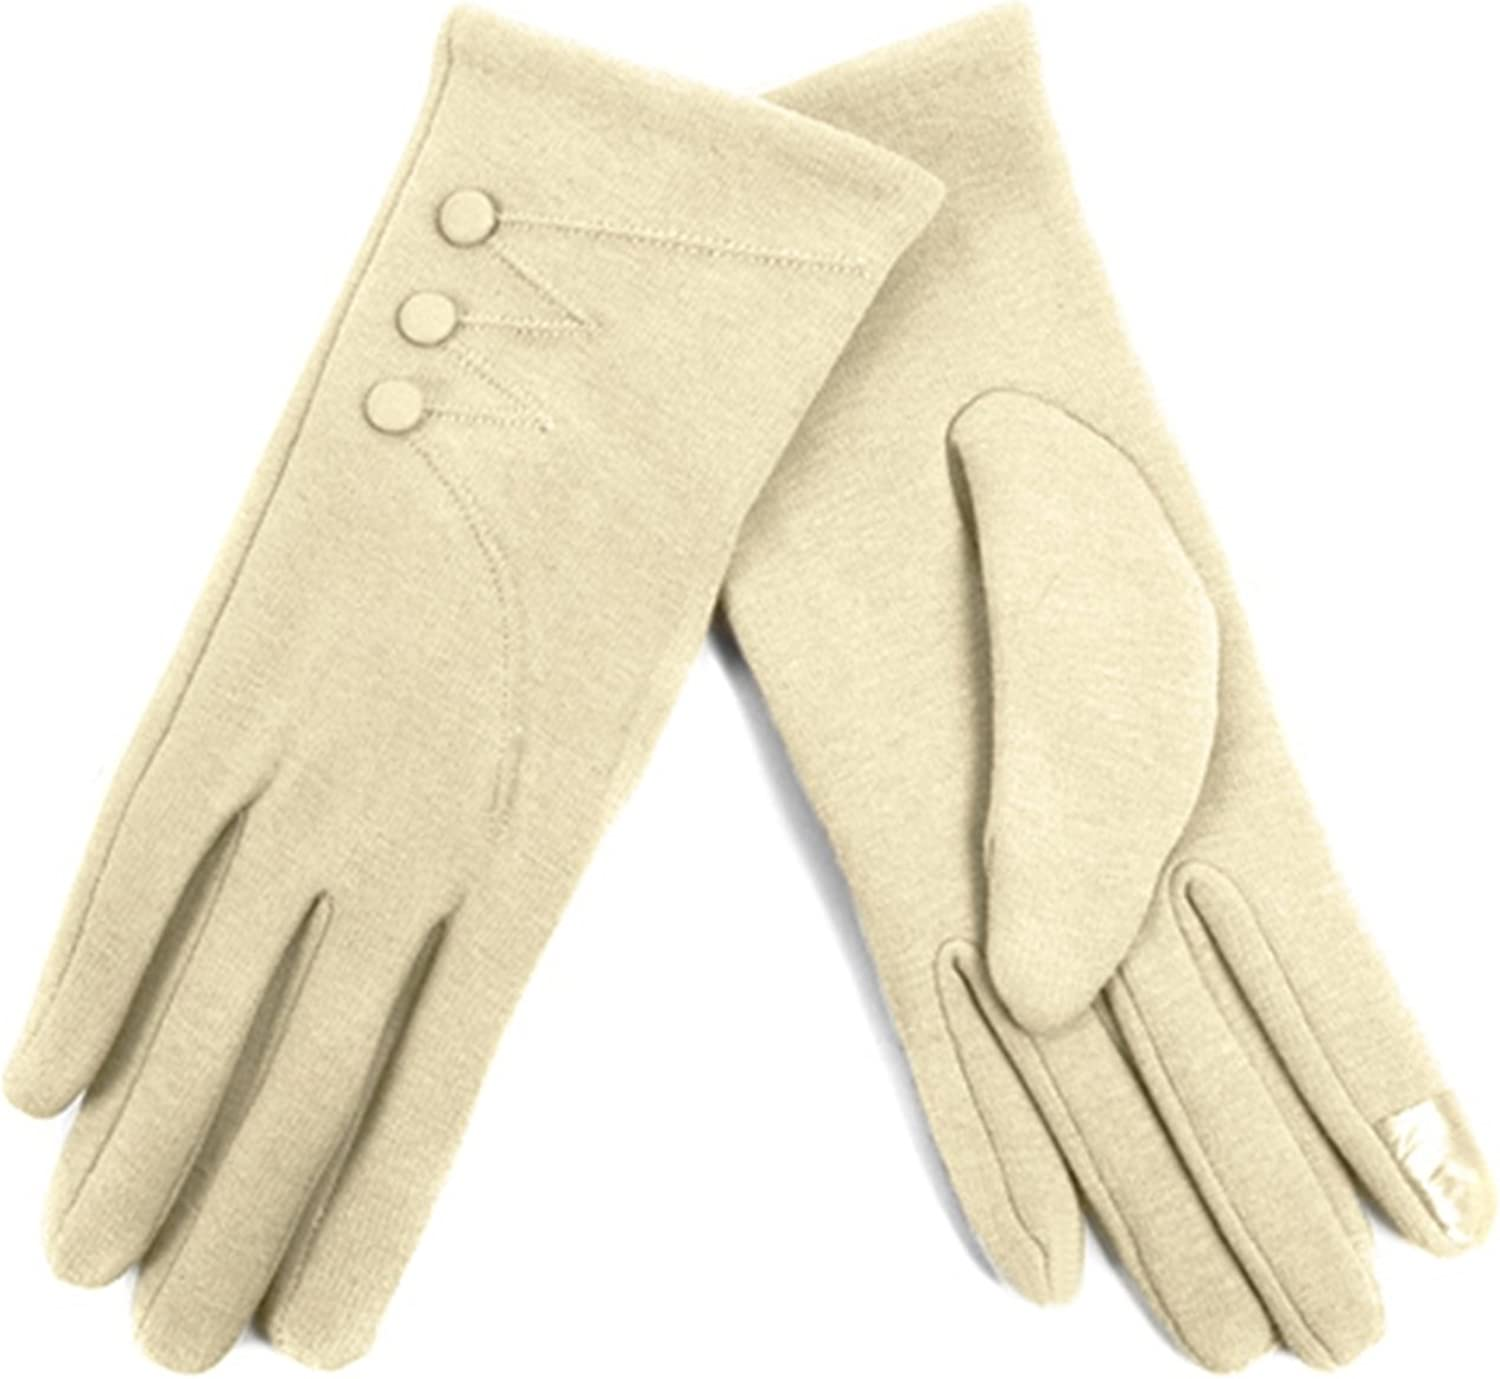 Women's Ivory Stylish Touch Screen Gloves with Button Accent & Fleece Lining SM